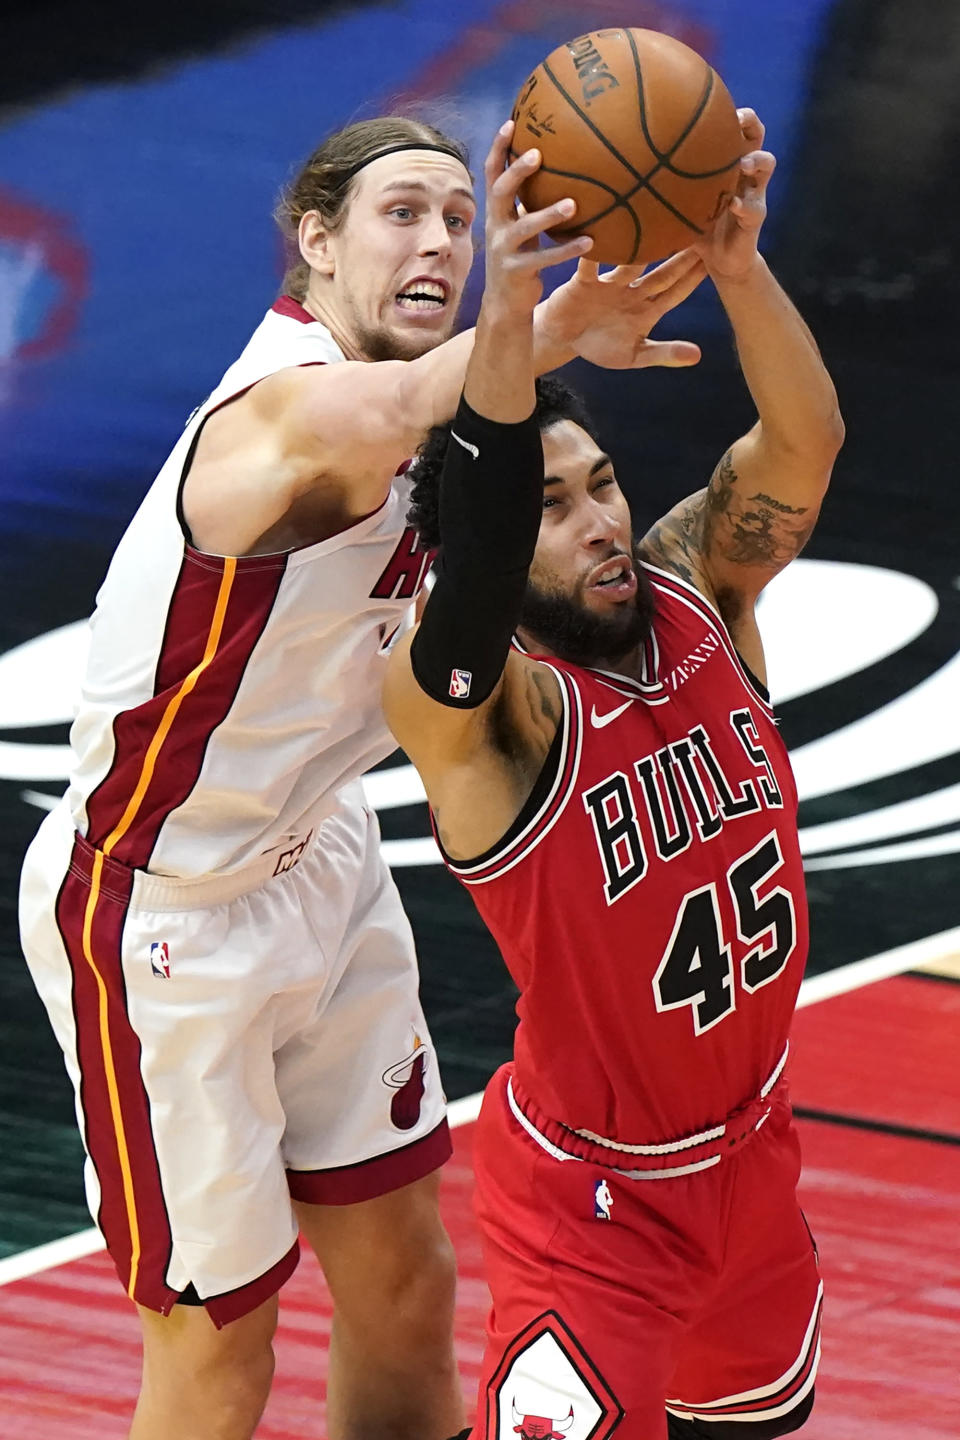 Chicago Bulls guard Denzel Valentine, right, rebounds the ball against Miami Heat forward Kelly Olynyk during the first half of an NBA basketball game in Chicago, Friday, March 12, 2021. (AP Photo/Nam Y. Huh)